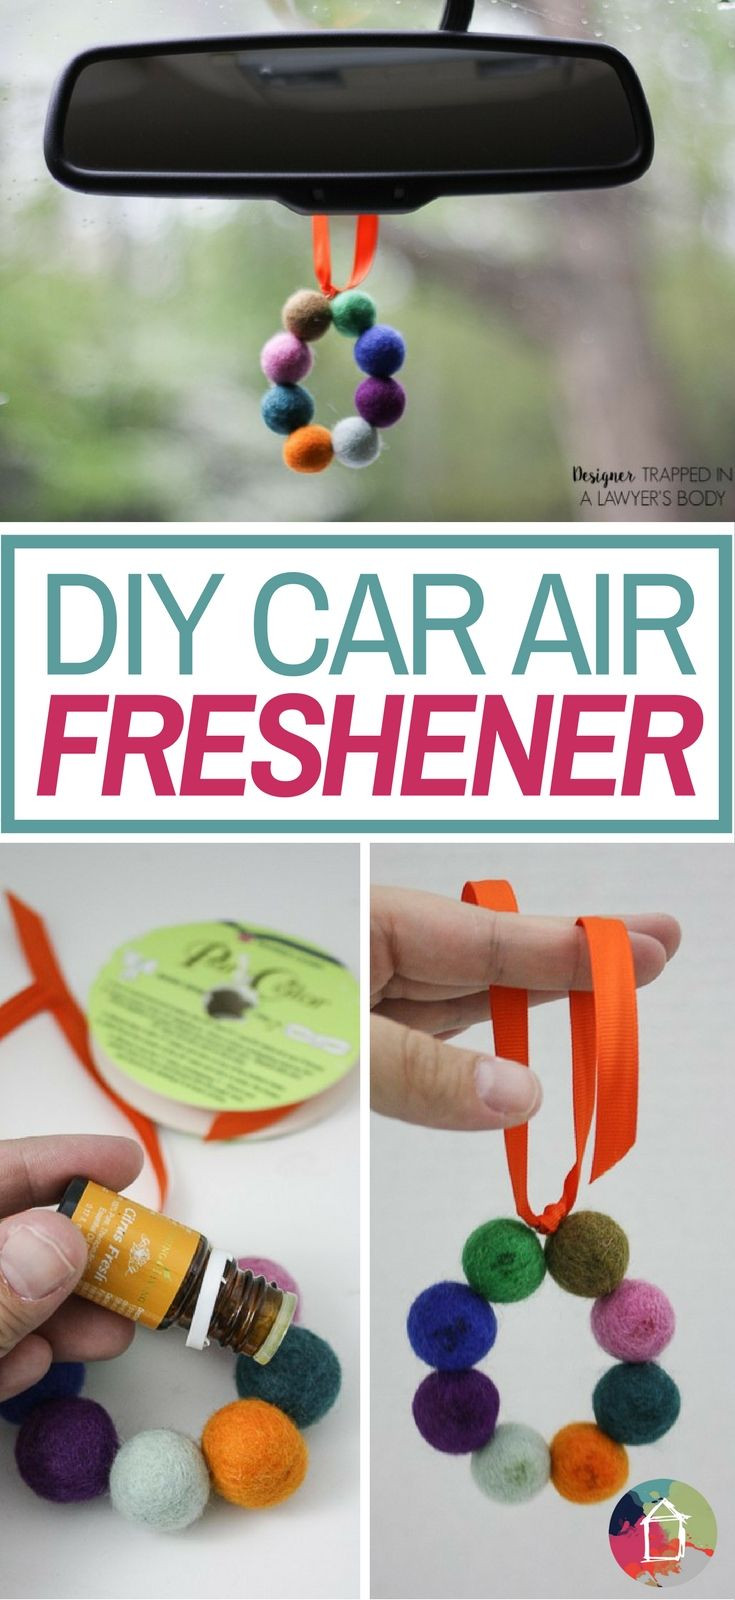 Best ideas about DIY Car Air Freshener . Save or Pin Best 25 Diy car air fresheners ideas on Pinterest Now.